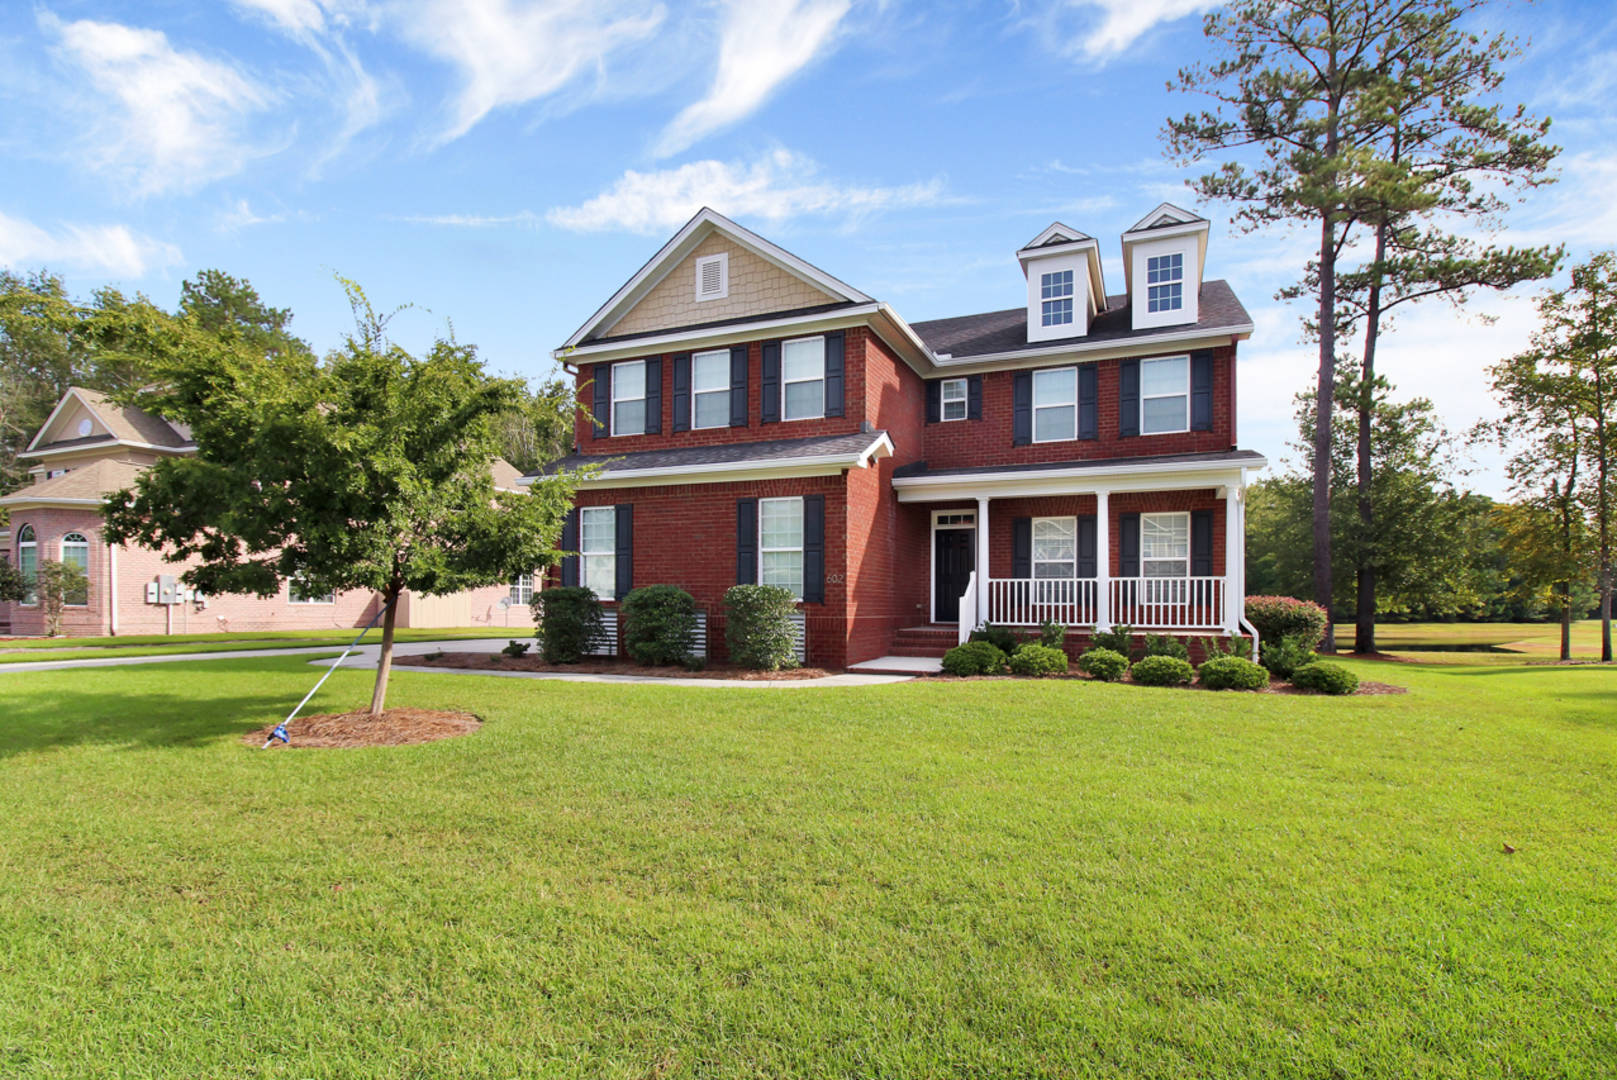 602 Wyndham way Pooler, GA 31322